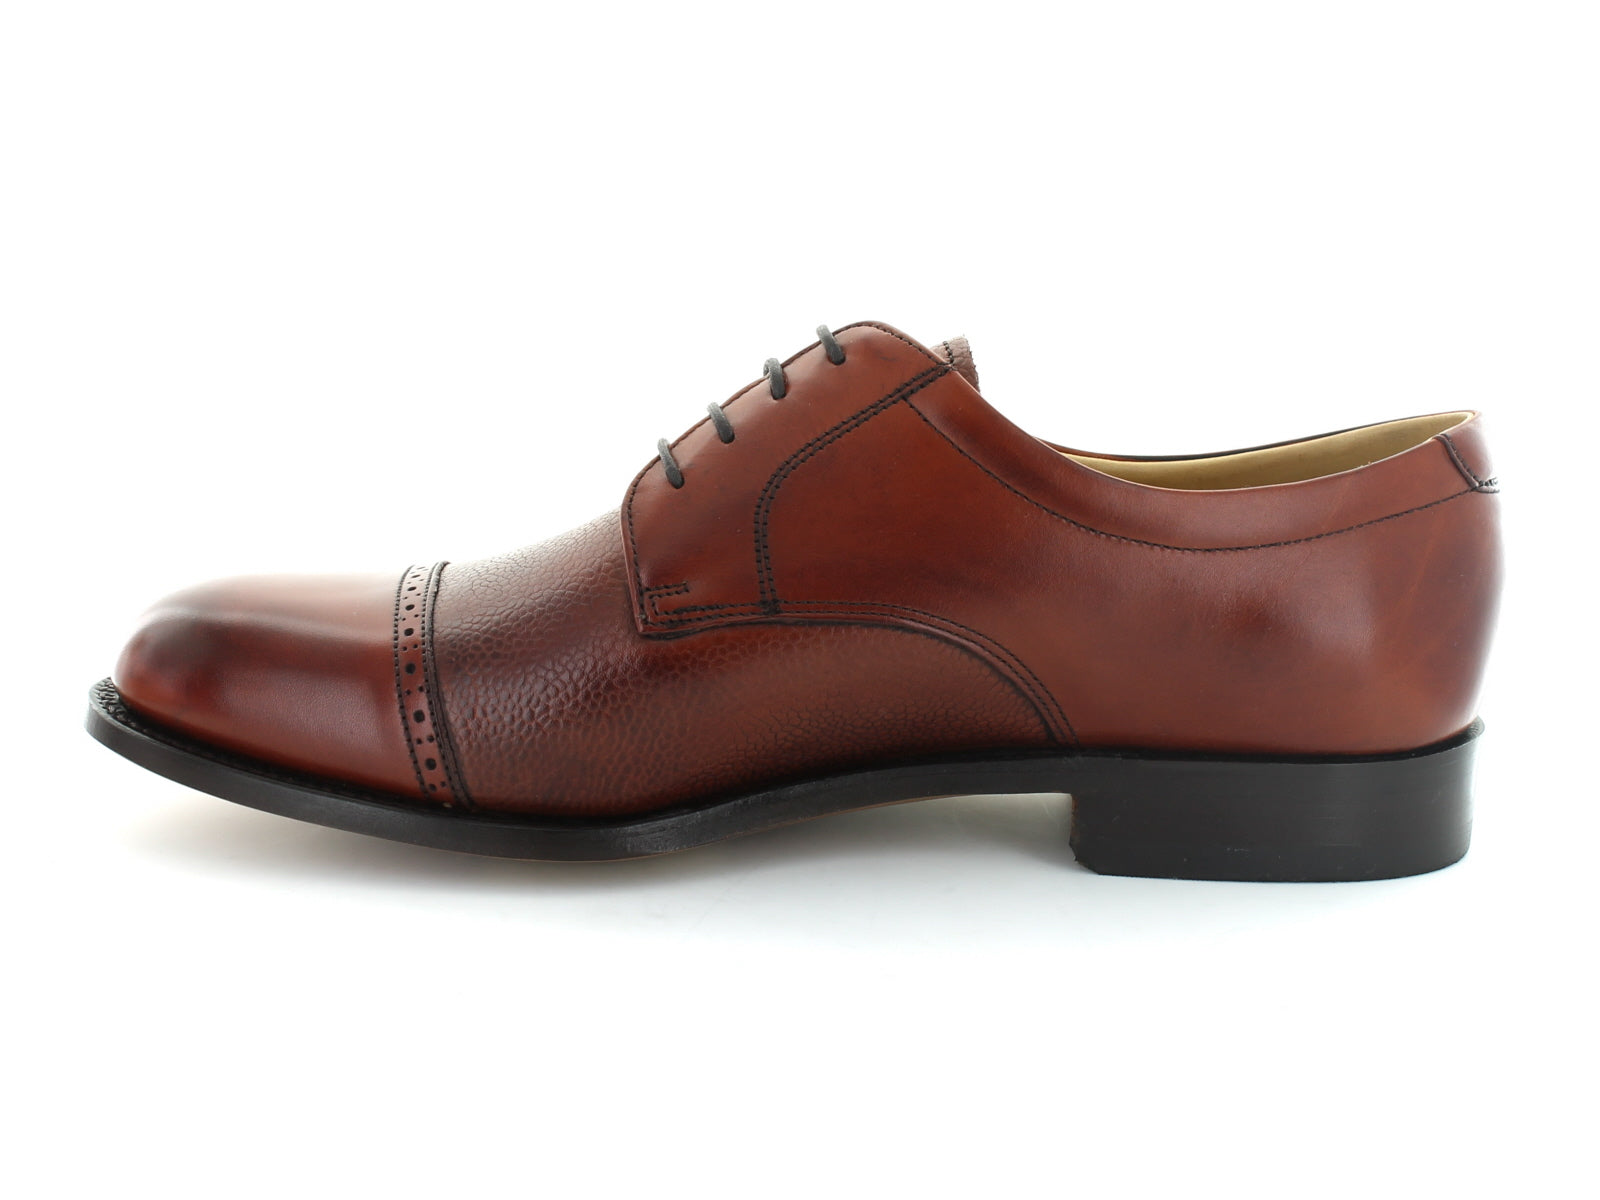 Barker Staines in Rosewood Leather inner view